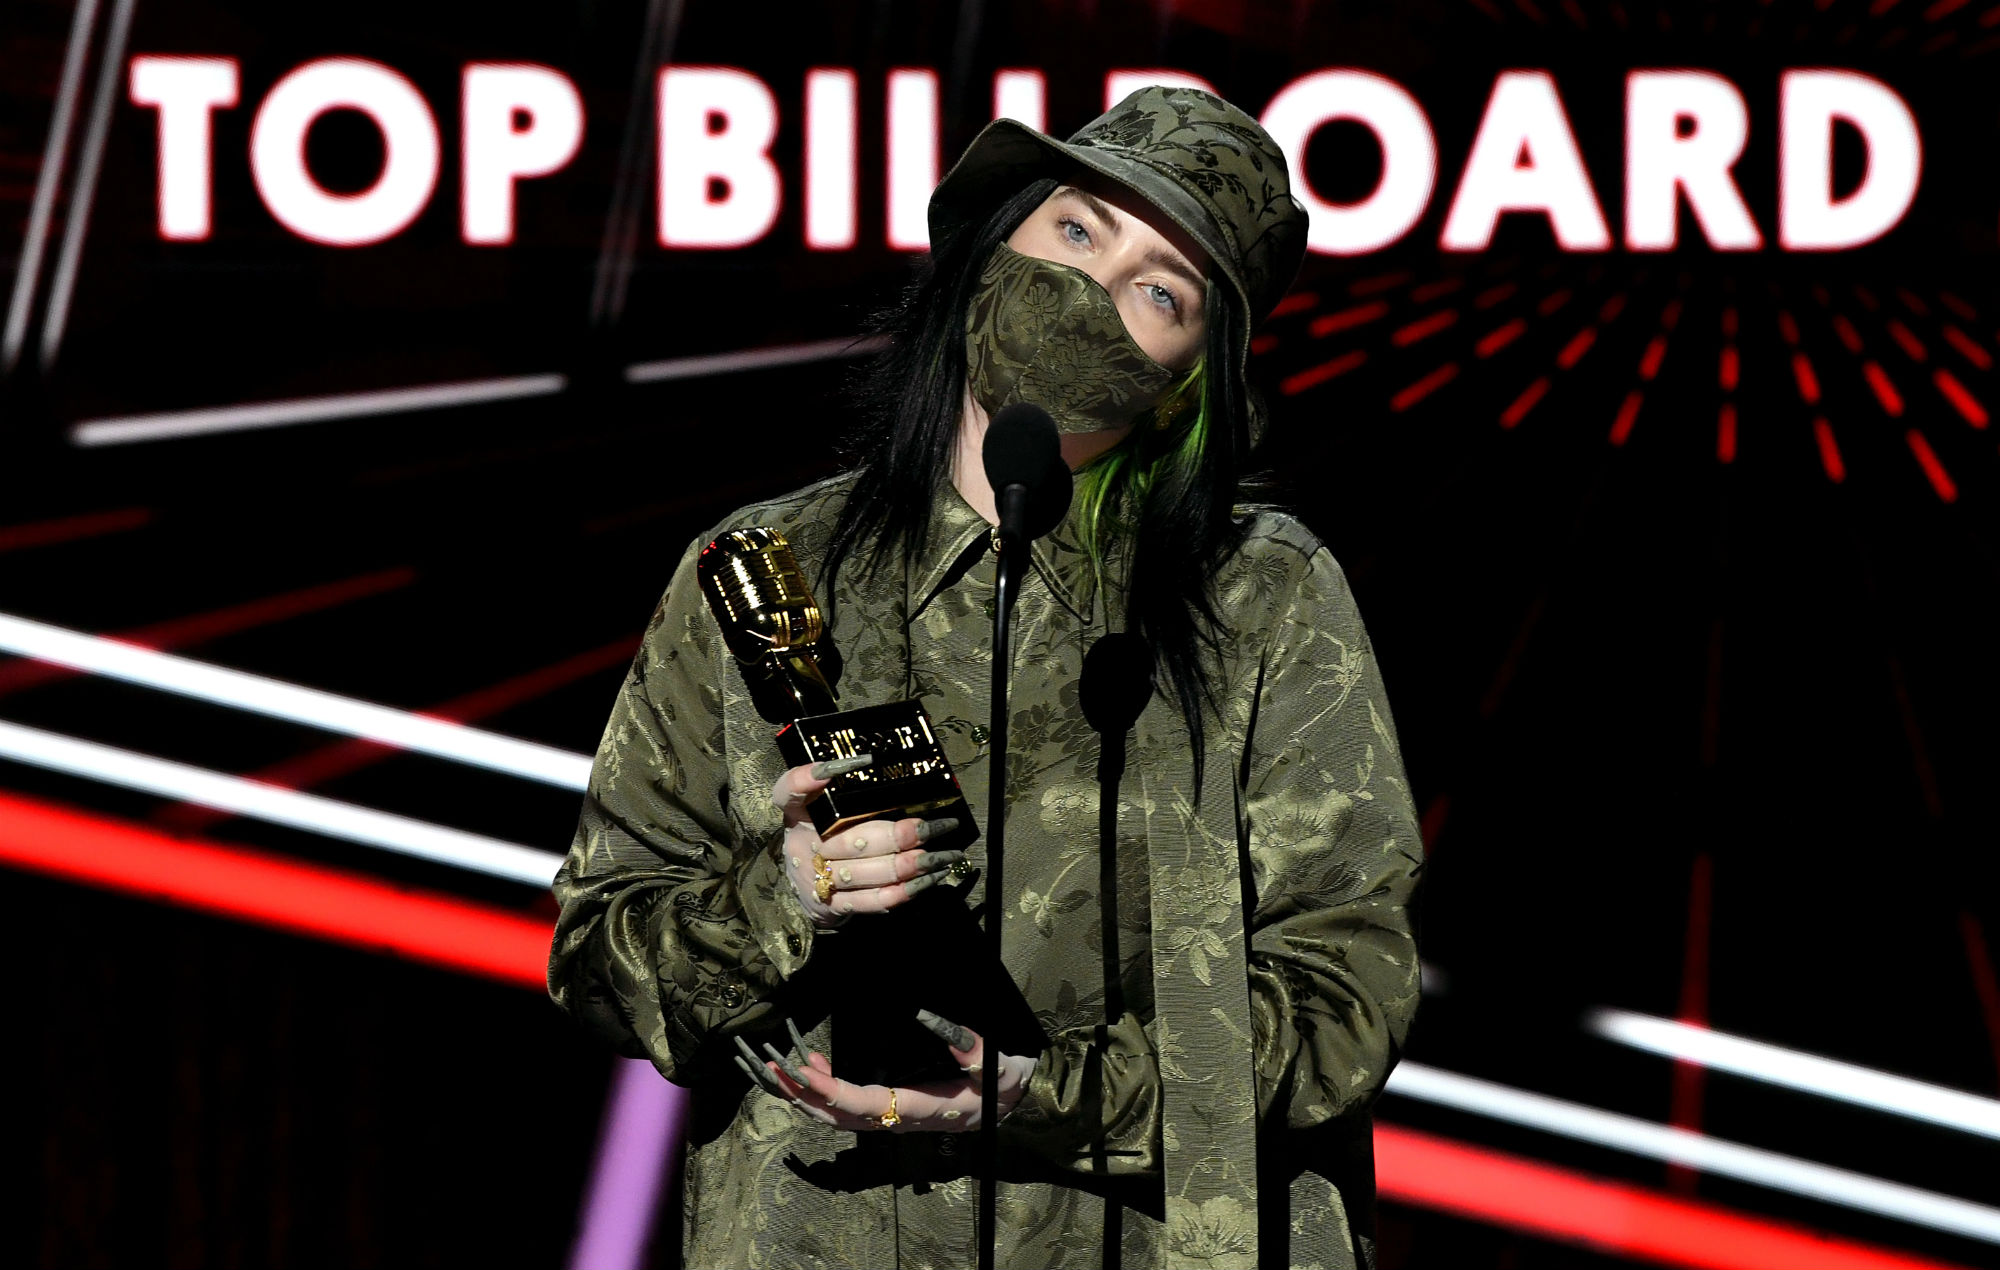 Billie Eilish at the 2020 Billboard Music Awards (Picture: Getty)